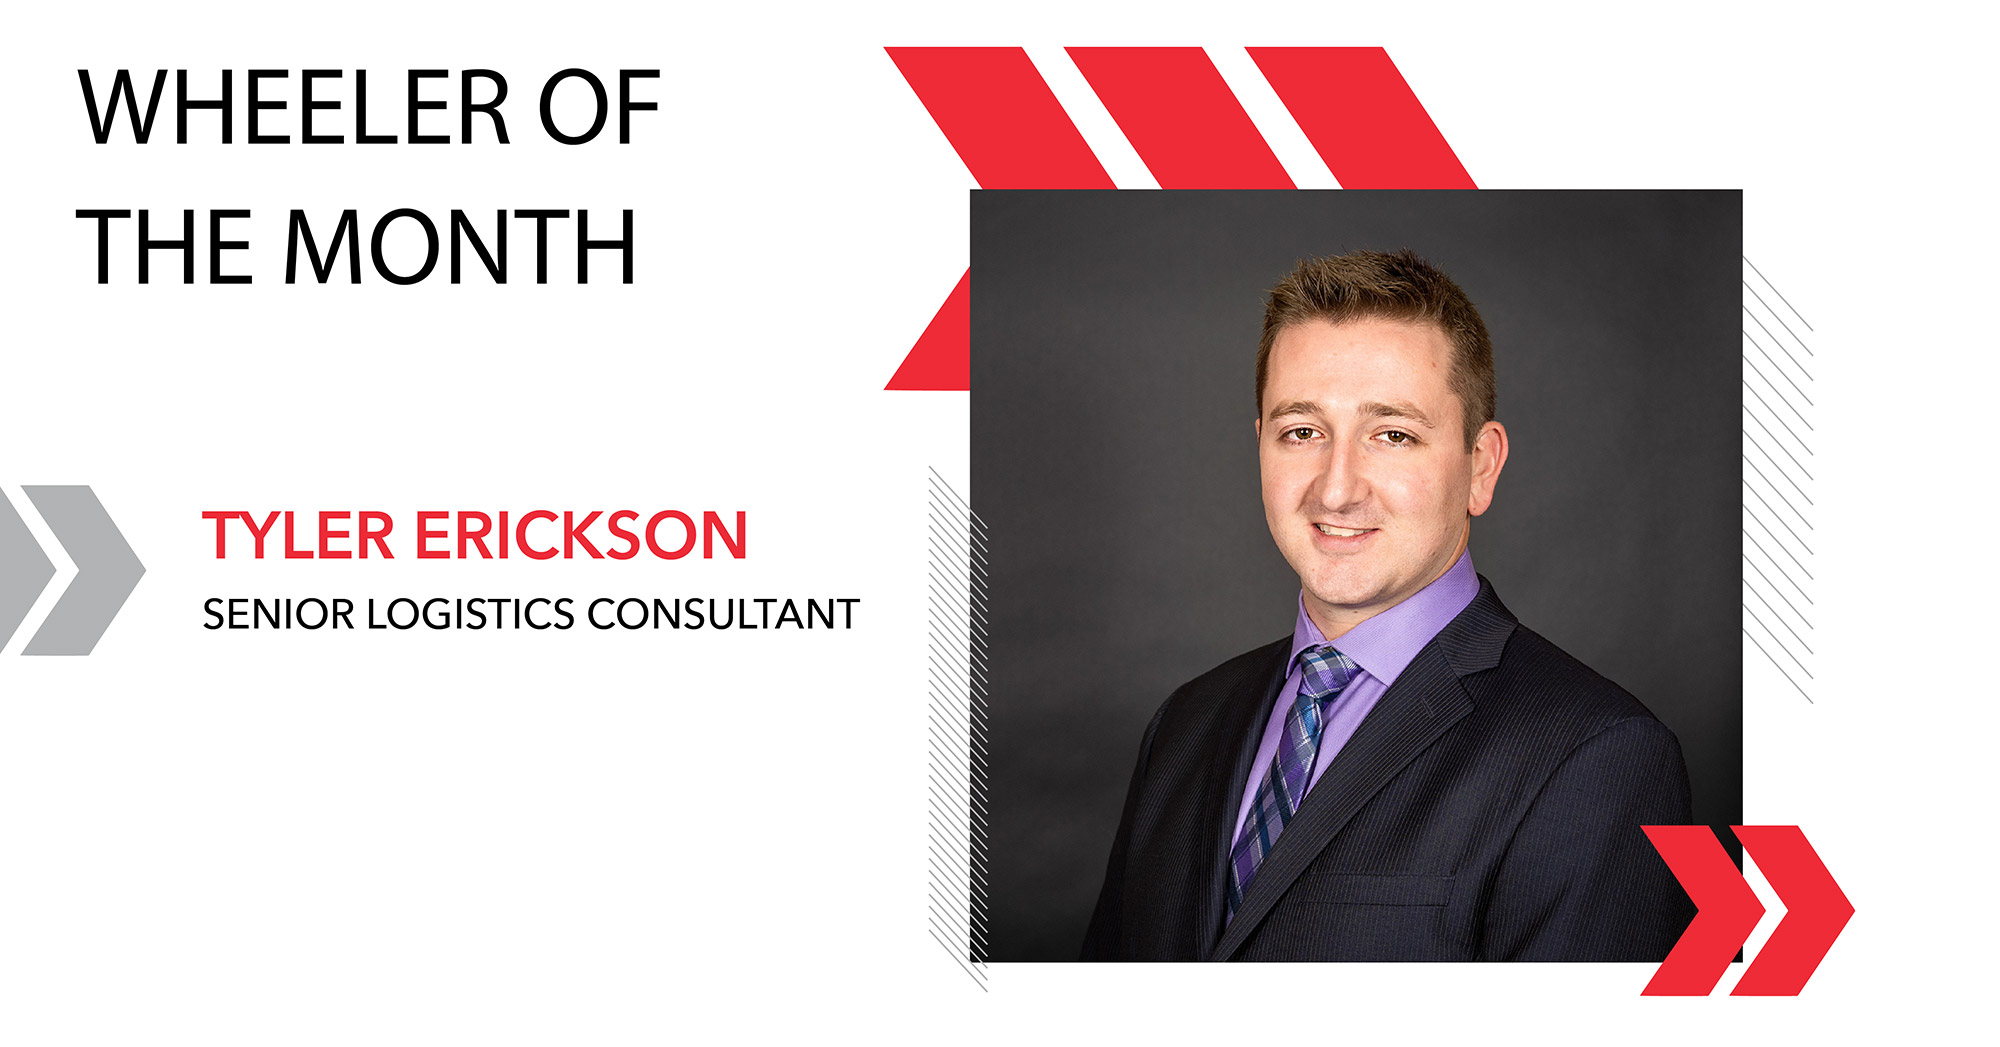 Tyler Erickson is Fifth Wheel Freight's Wheeler of the Month